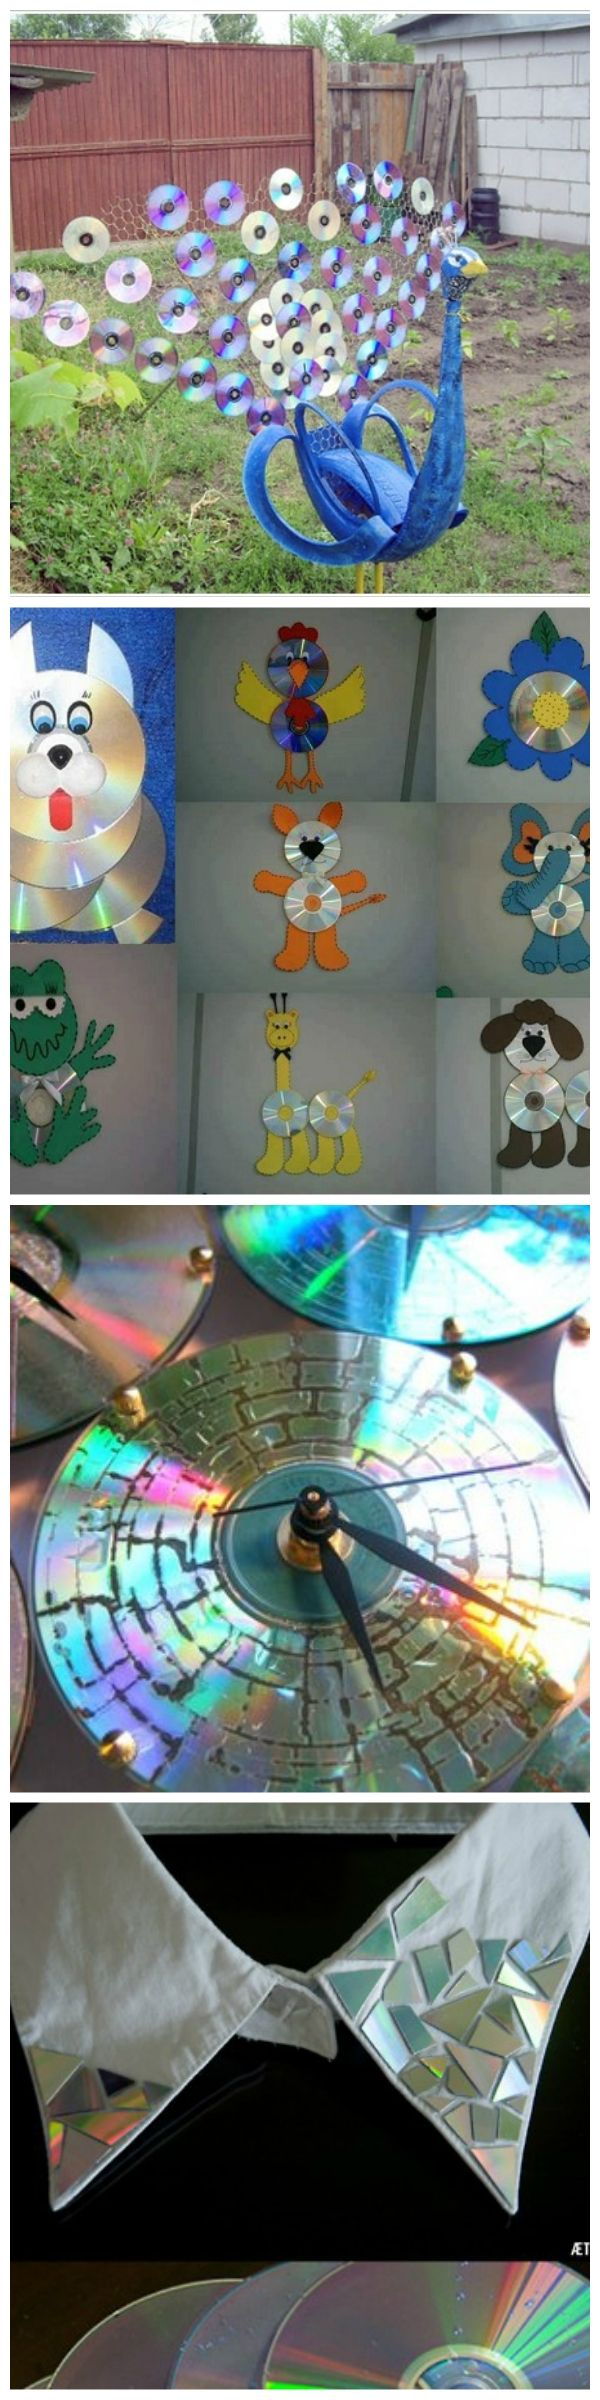 Image via CD Craft: Crafty uses for old Compact Discs Image via Roofing for  sheds or dog houses made from upcycled CDs and DVDs.